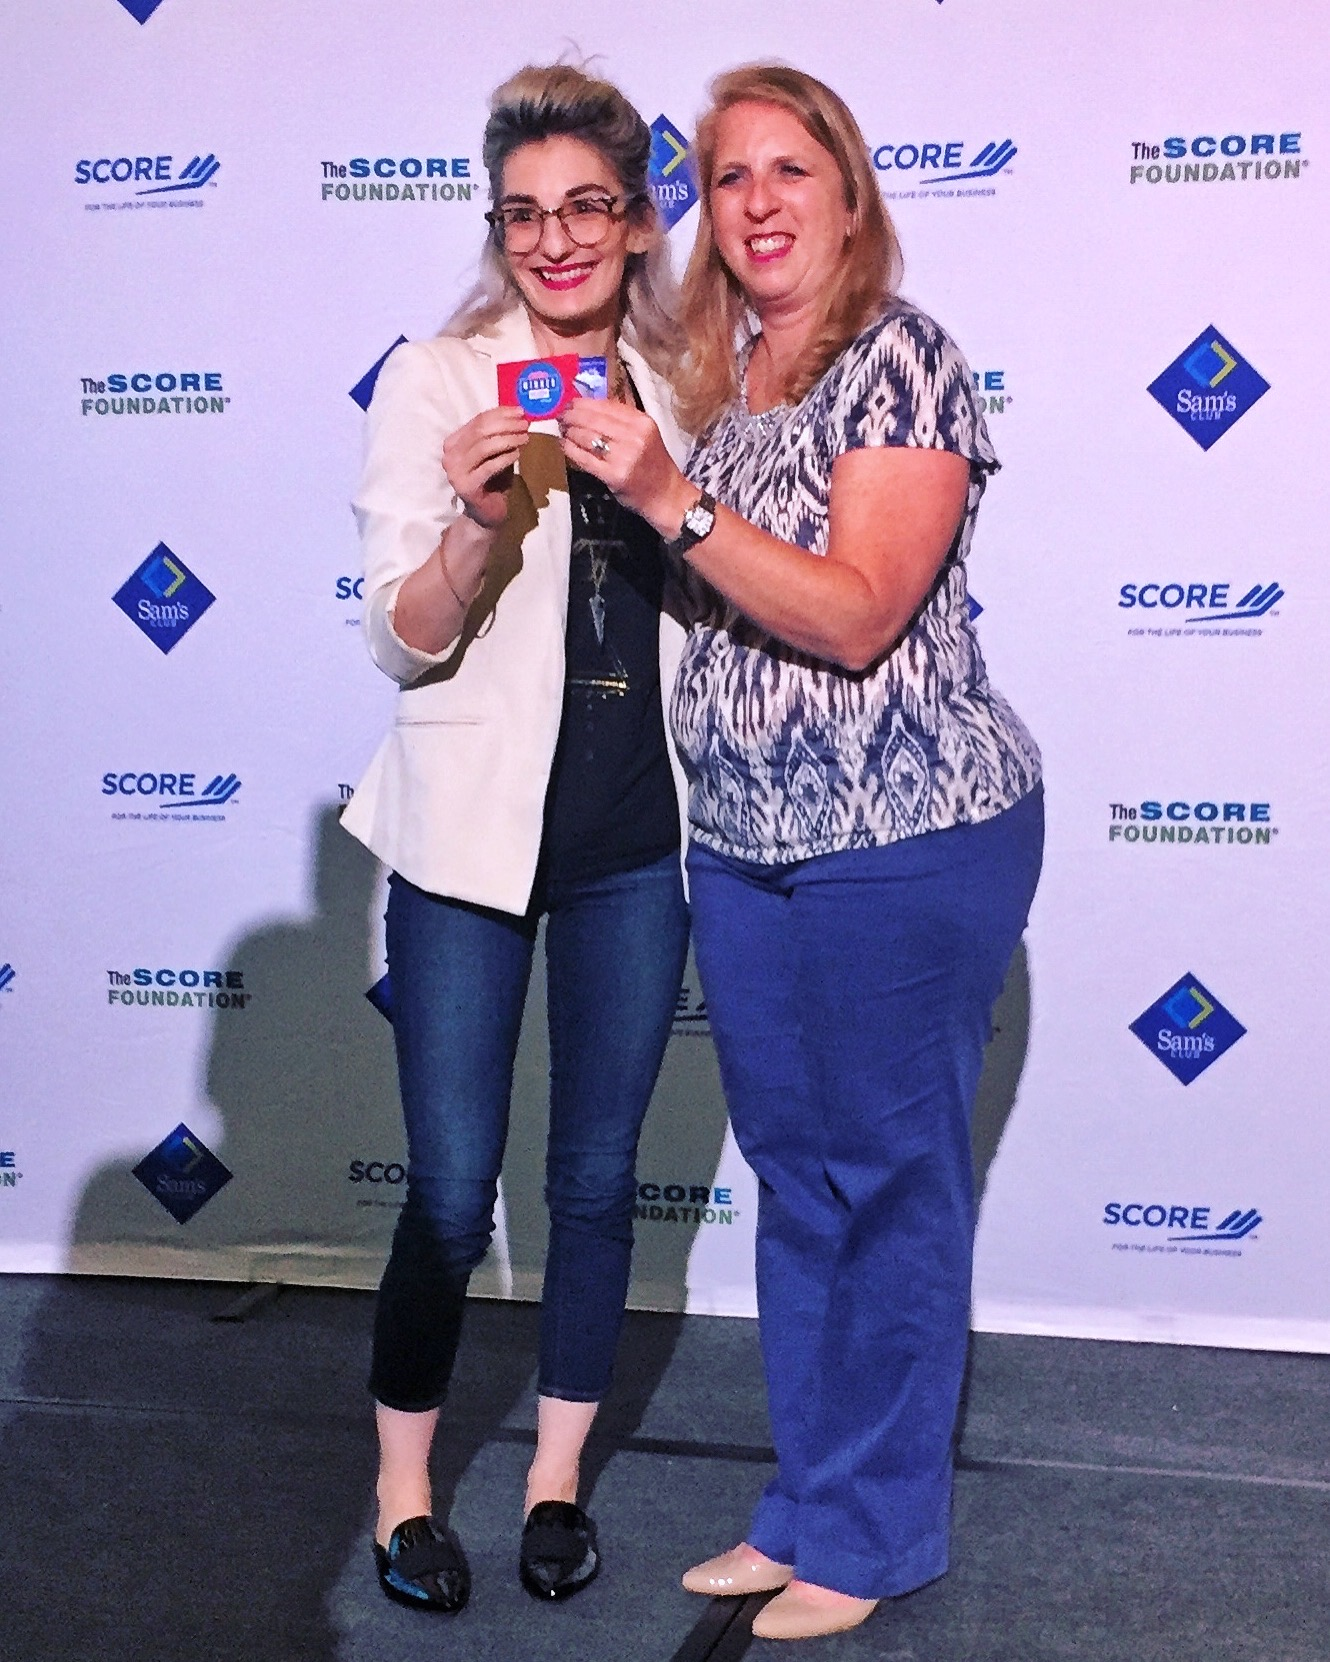 Kyira Hauer (left) accepts her SCORE award at the 2017 American Small Business Championship.